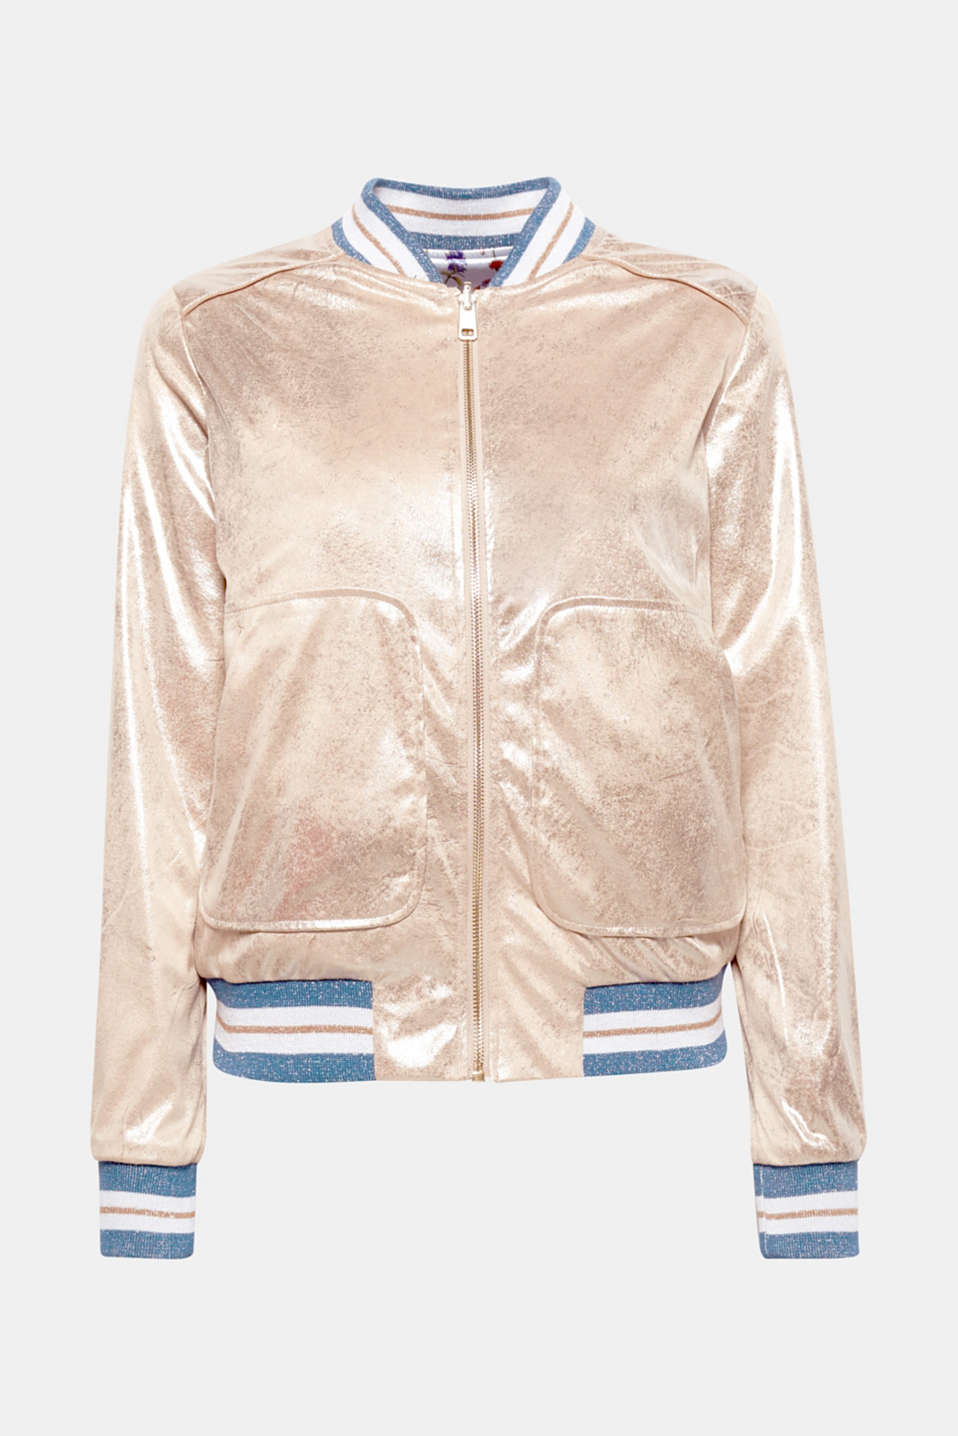 Two trend pieces in one style: this jacket can be worn in a golden metallic or a floral variation.